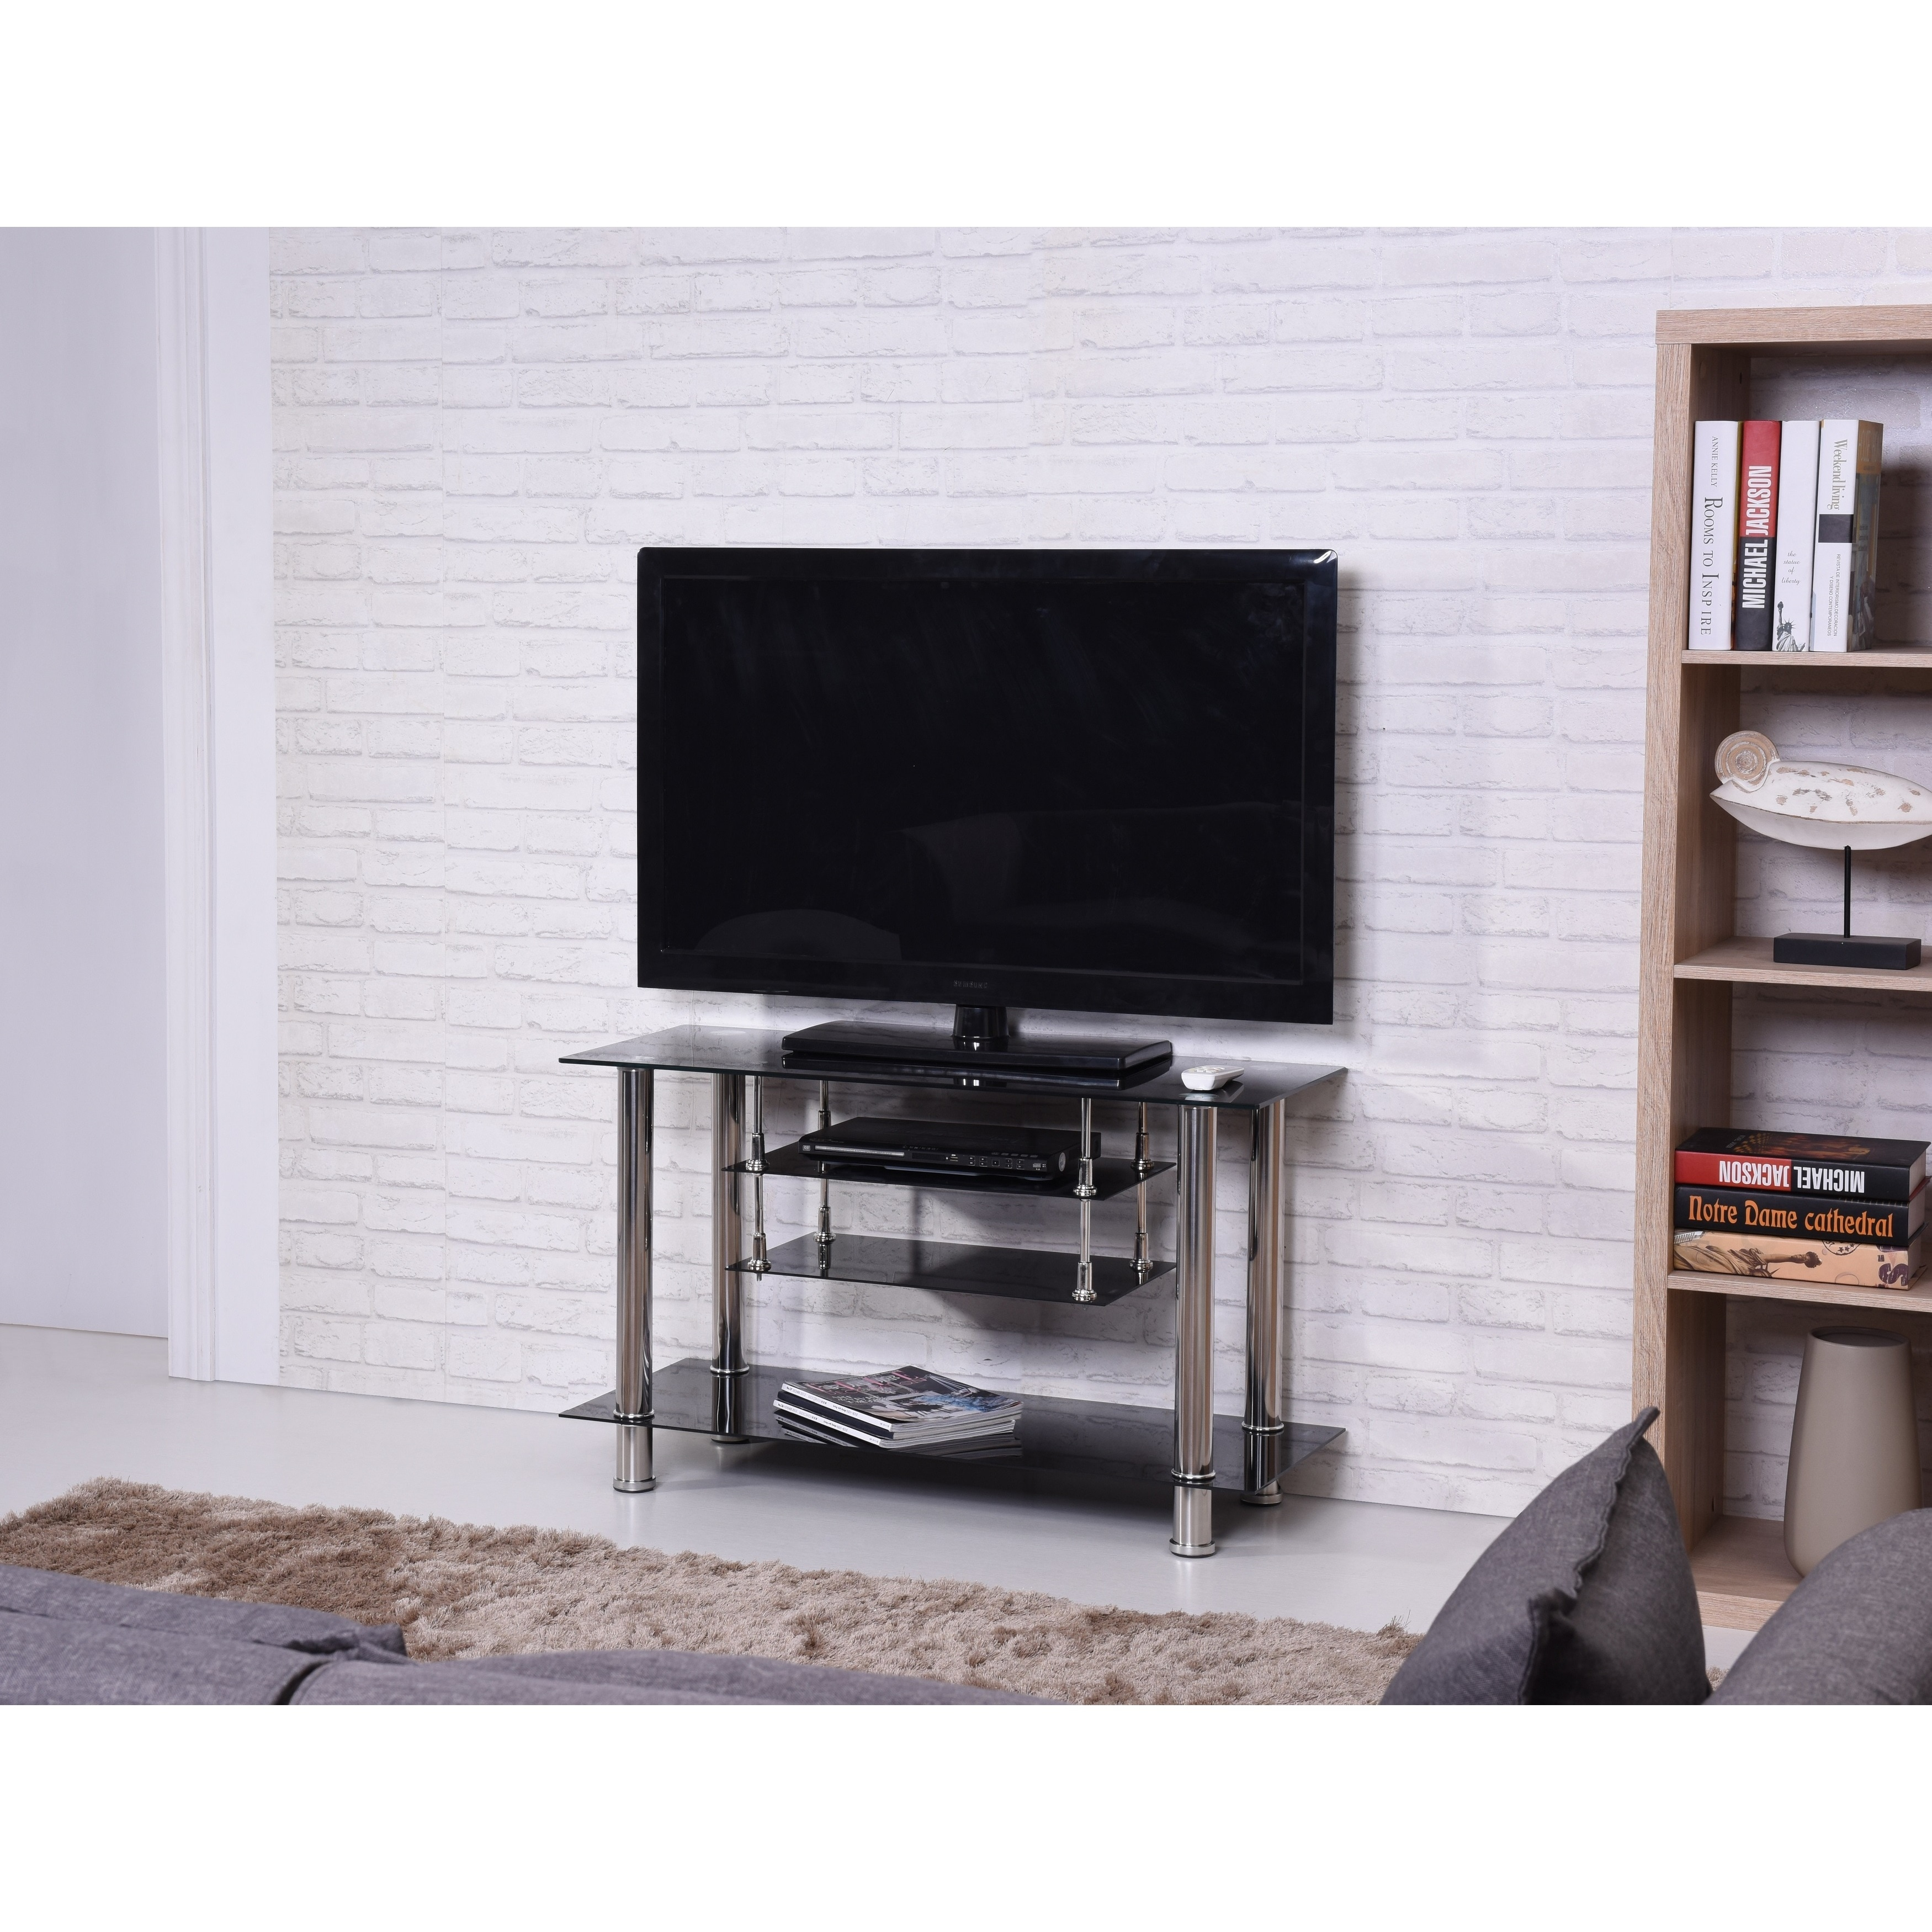 Black Chrome Tiered Tempered Glass Tv Stand